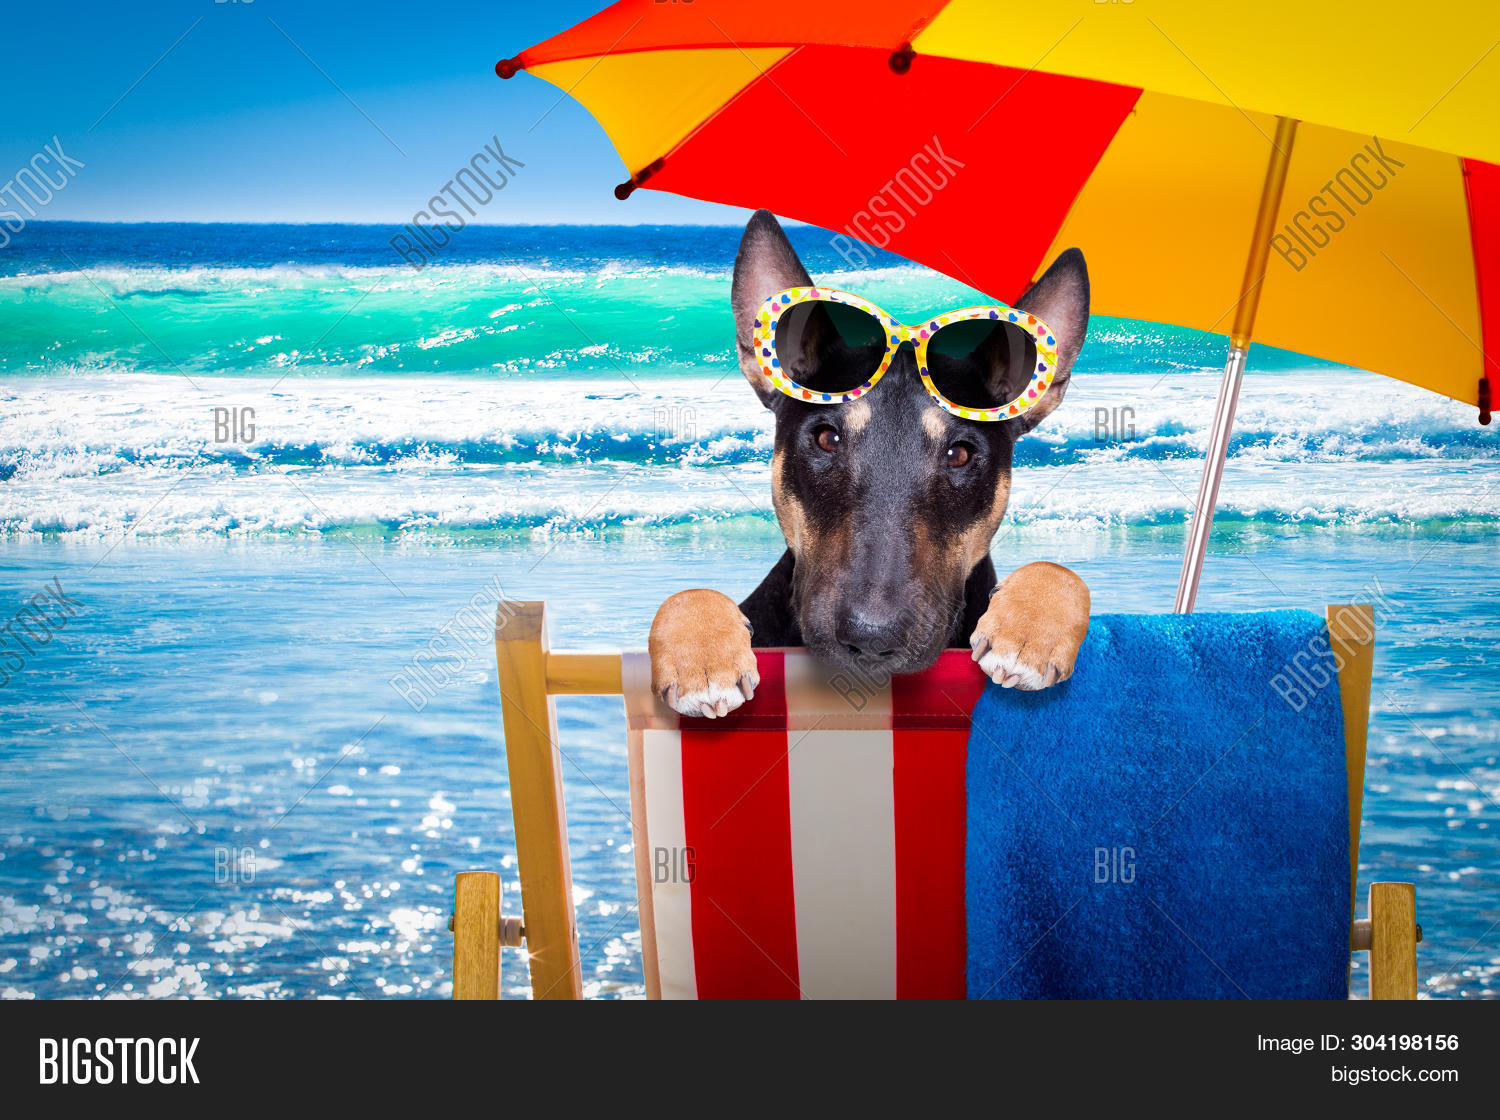 Bull Terrier  Dog Resting And Relaxing On A Hammock Or Beach Chair Under Umbrella At The Beach Ocean